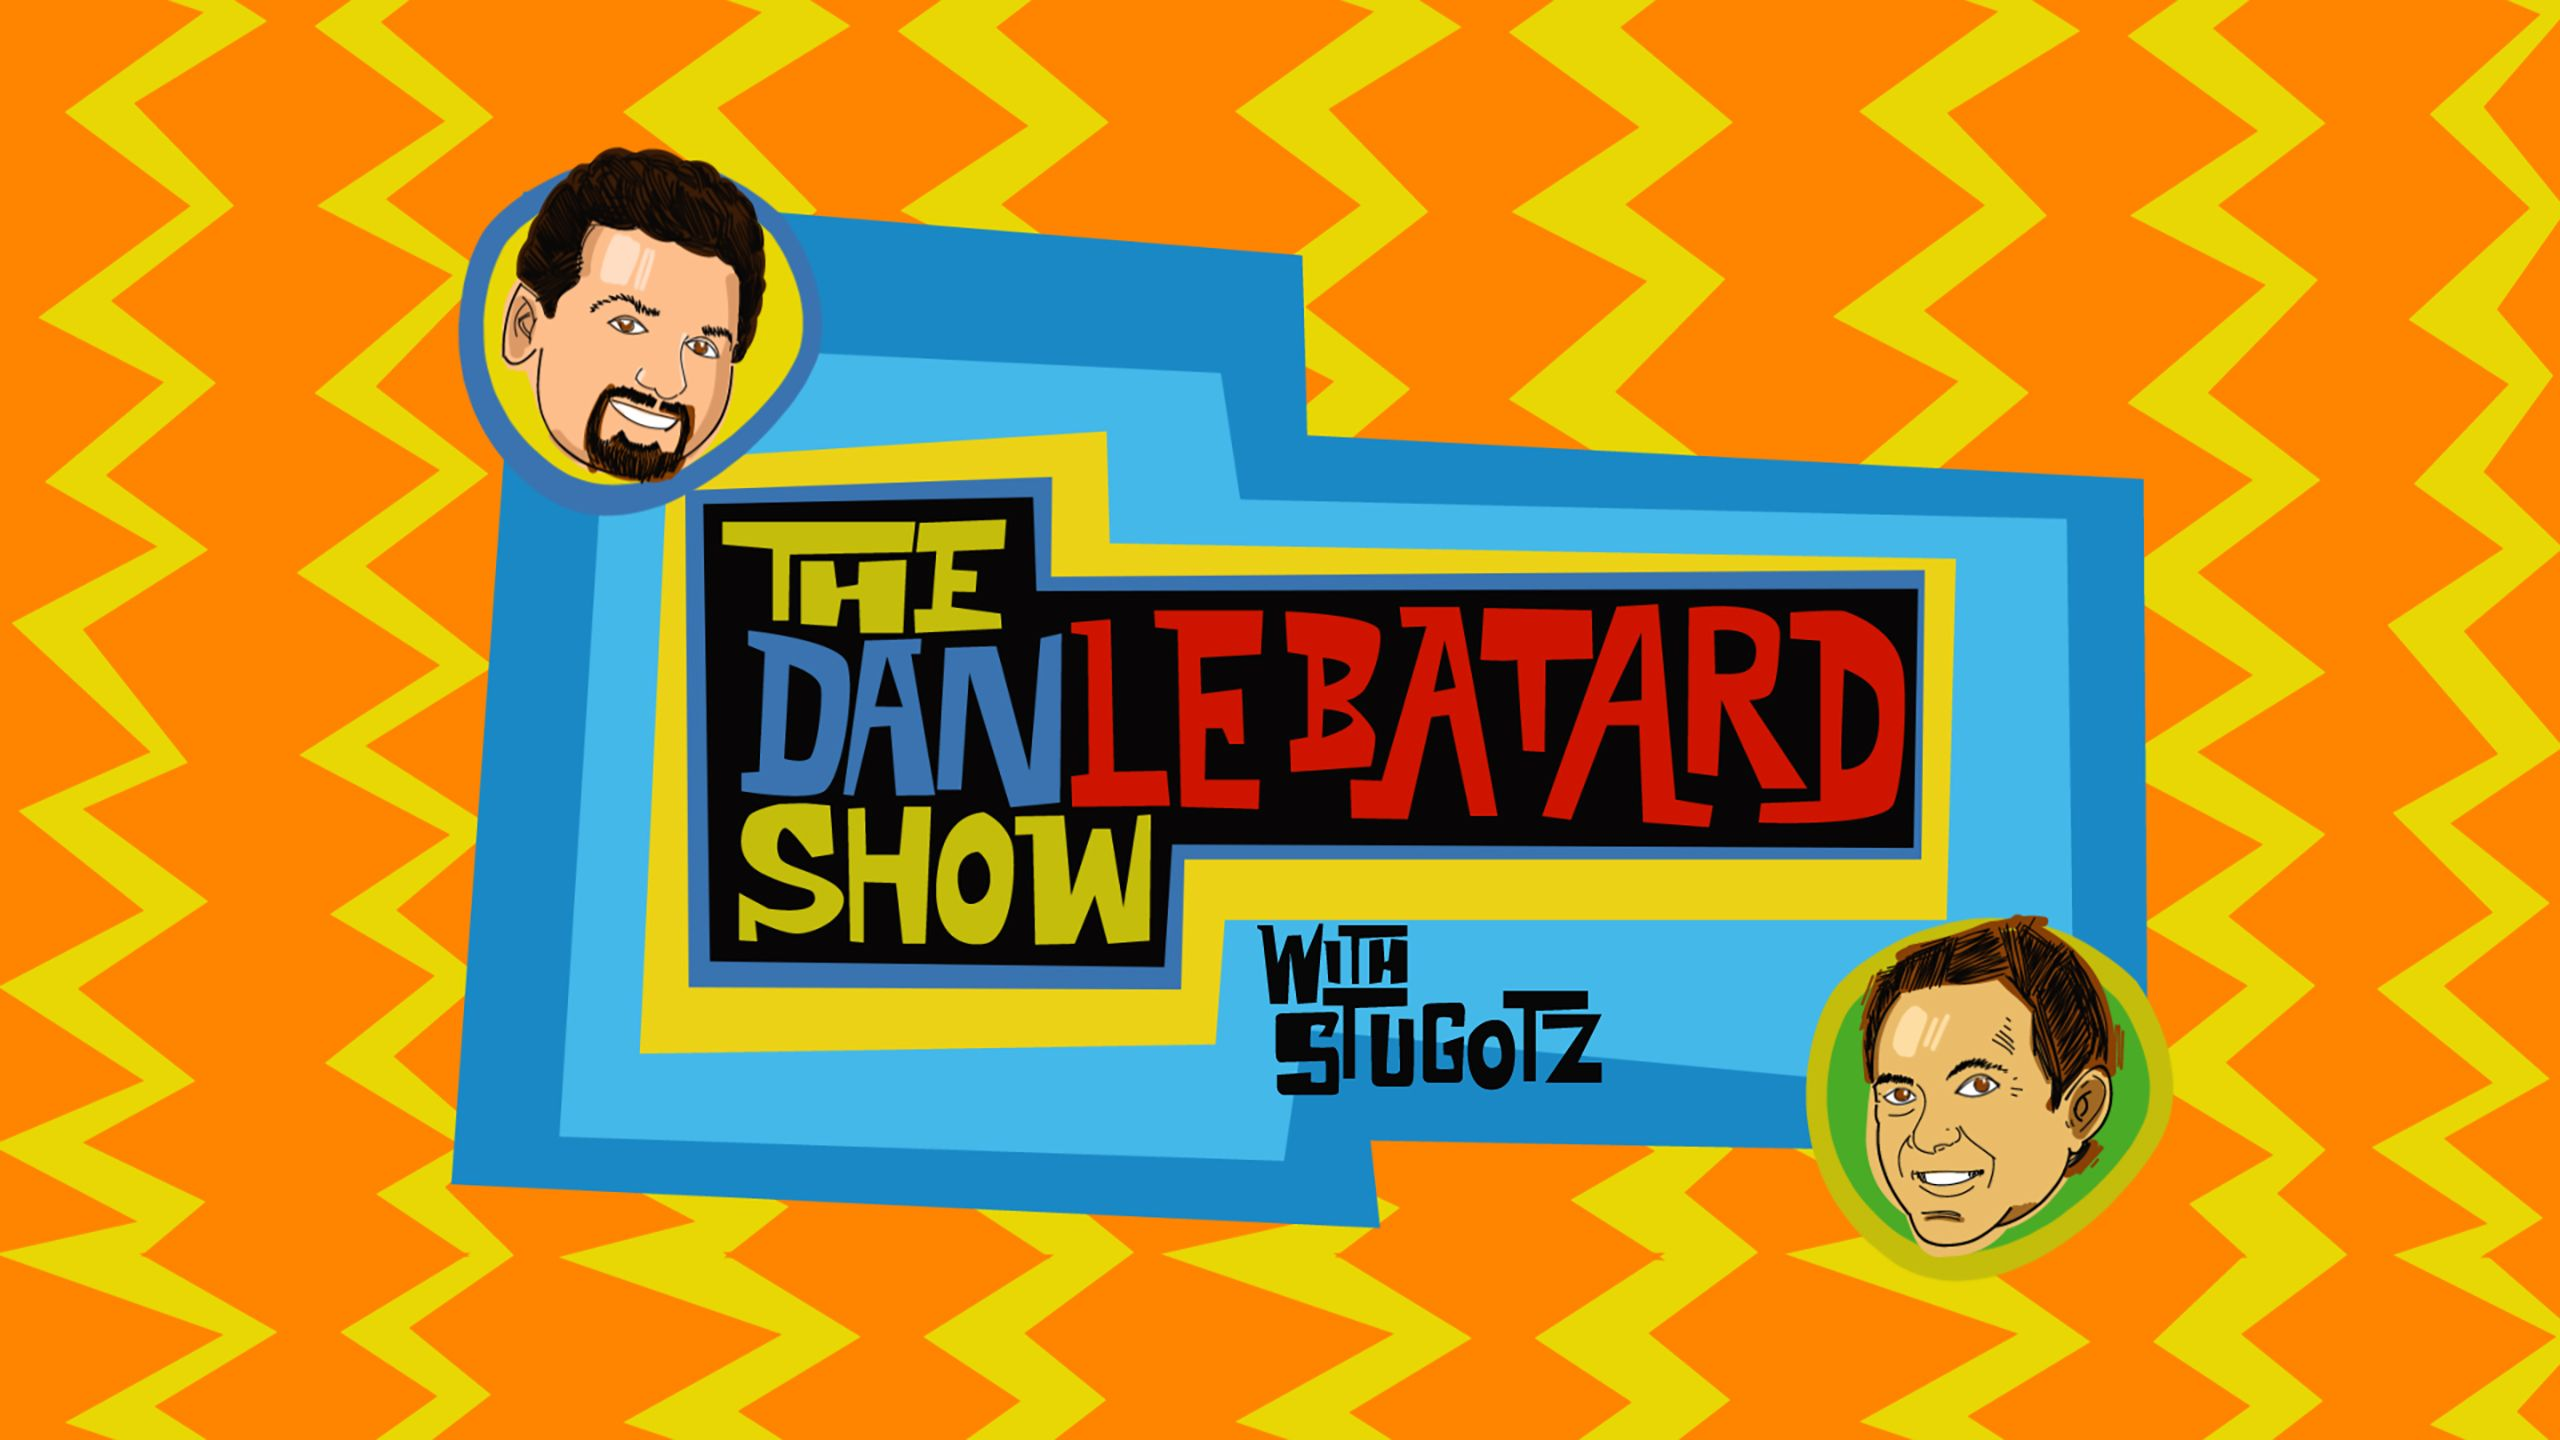 Thu, 4/26 - The Dan Le Batard Show with Stugotz Presented by Progressive